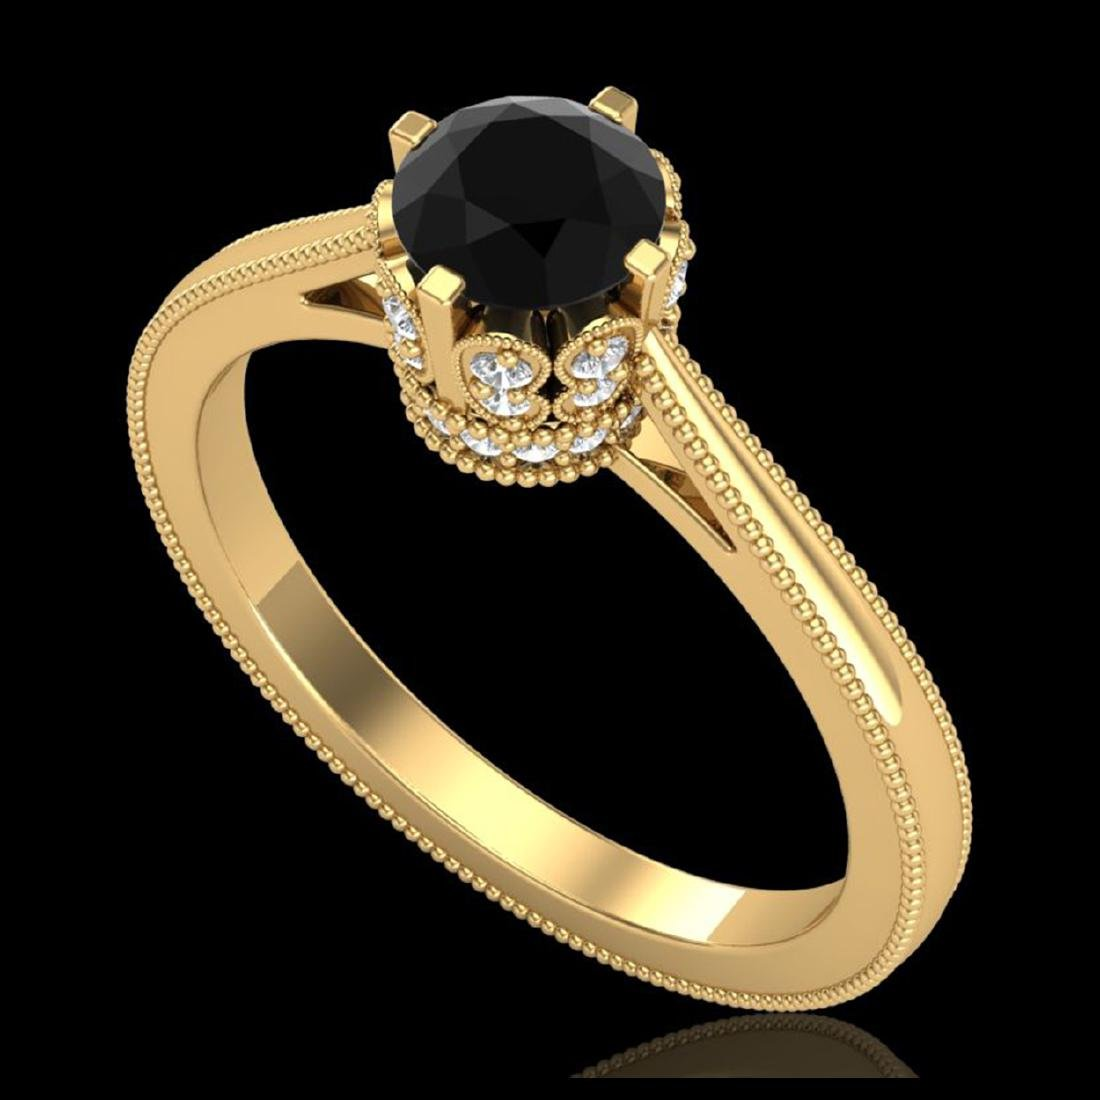 0.81 CTW Fancy Black Diamond Solitaire Engagement Art